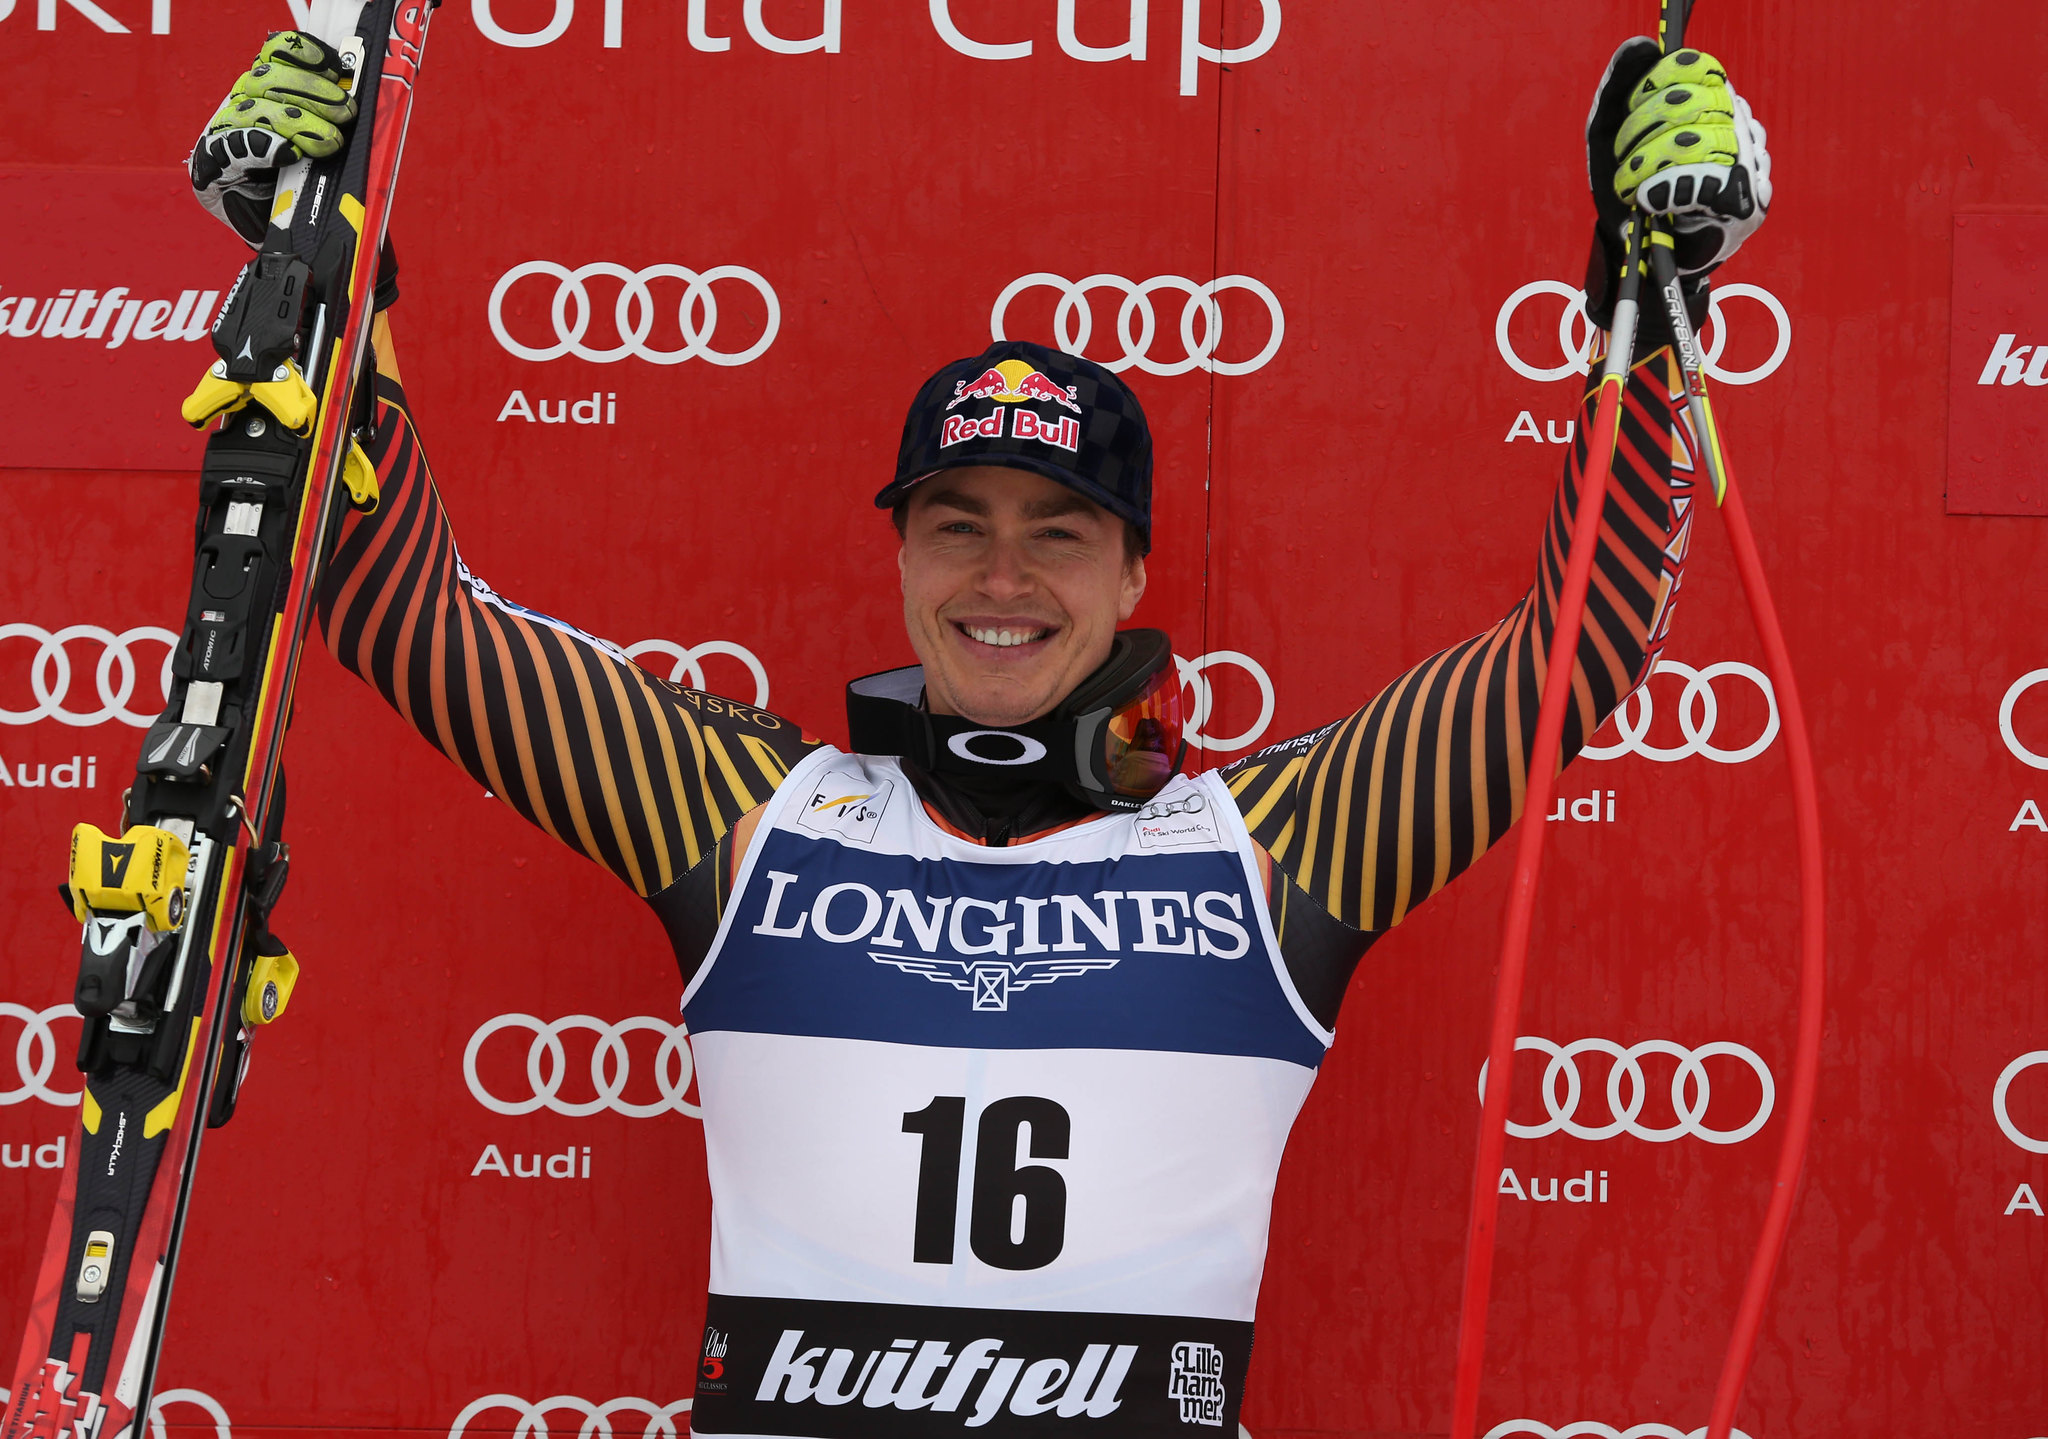 Erik Guay celebrates atop the podium in Kvitfjell, NOR